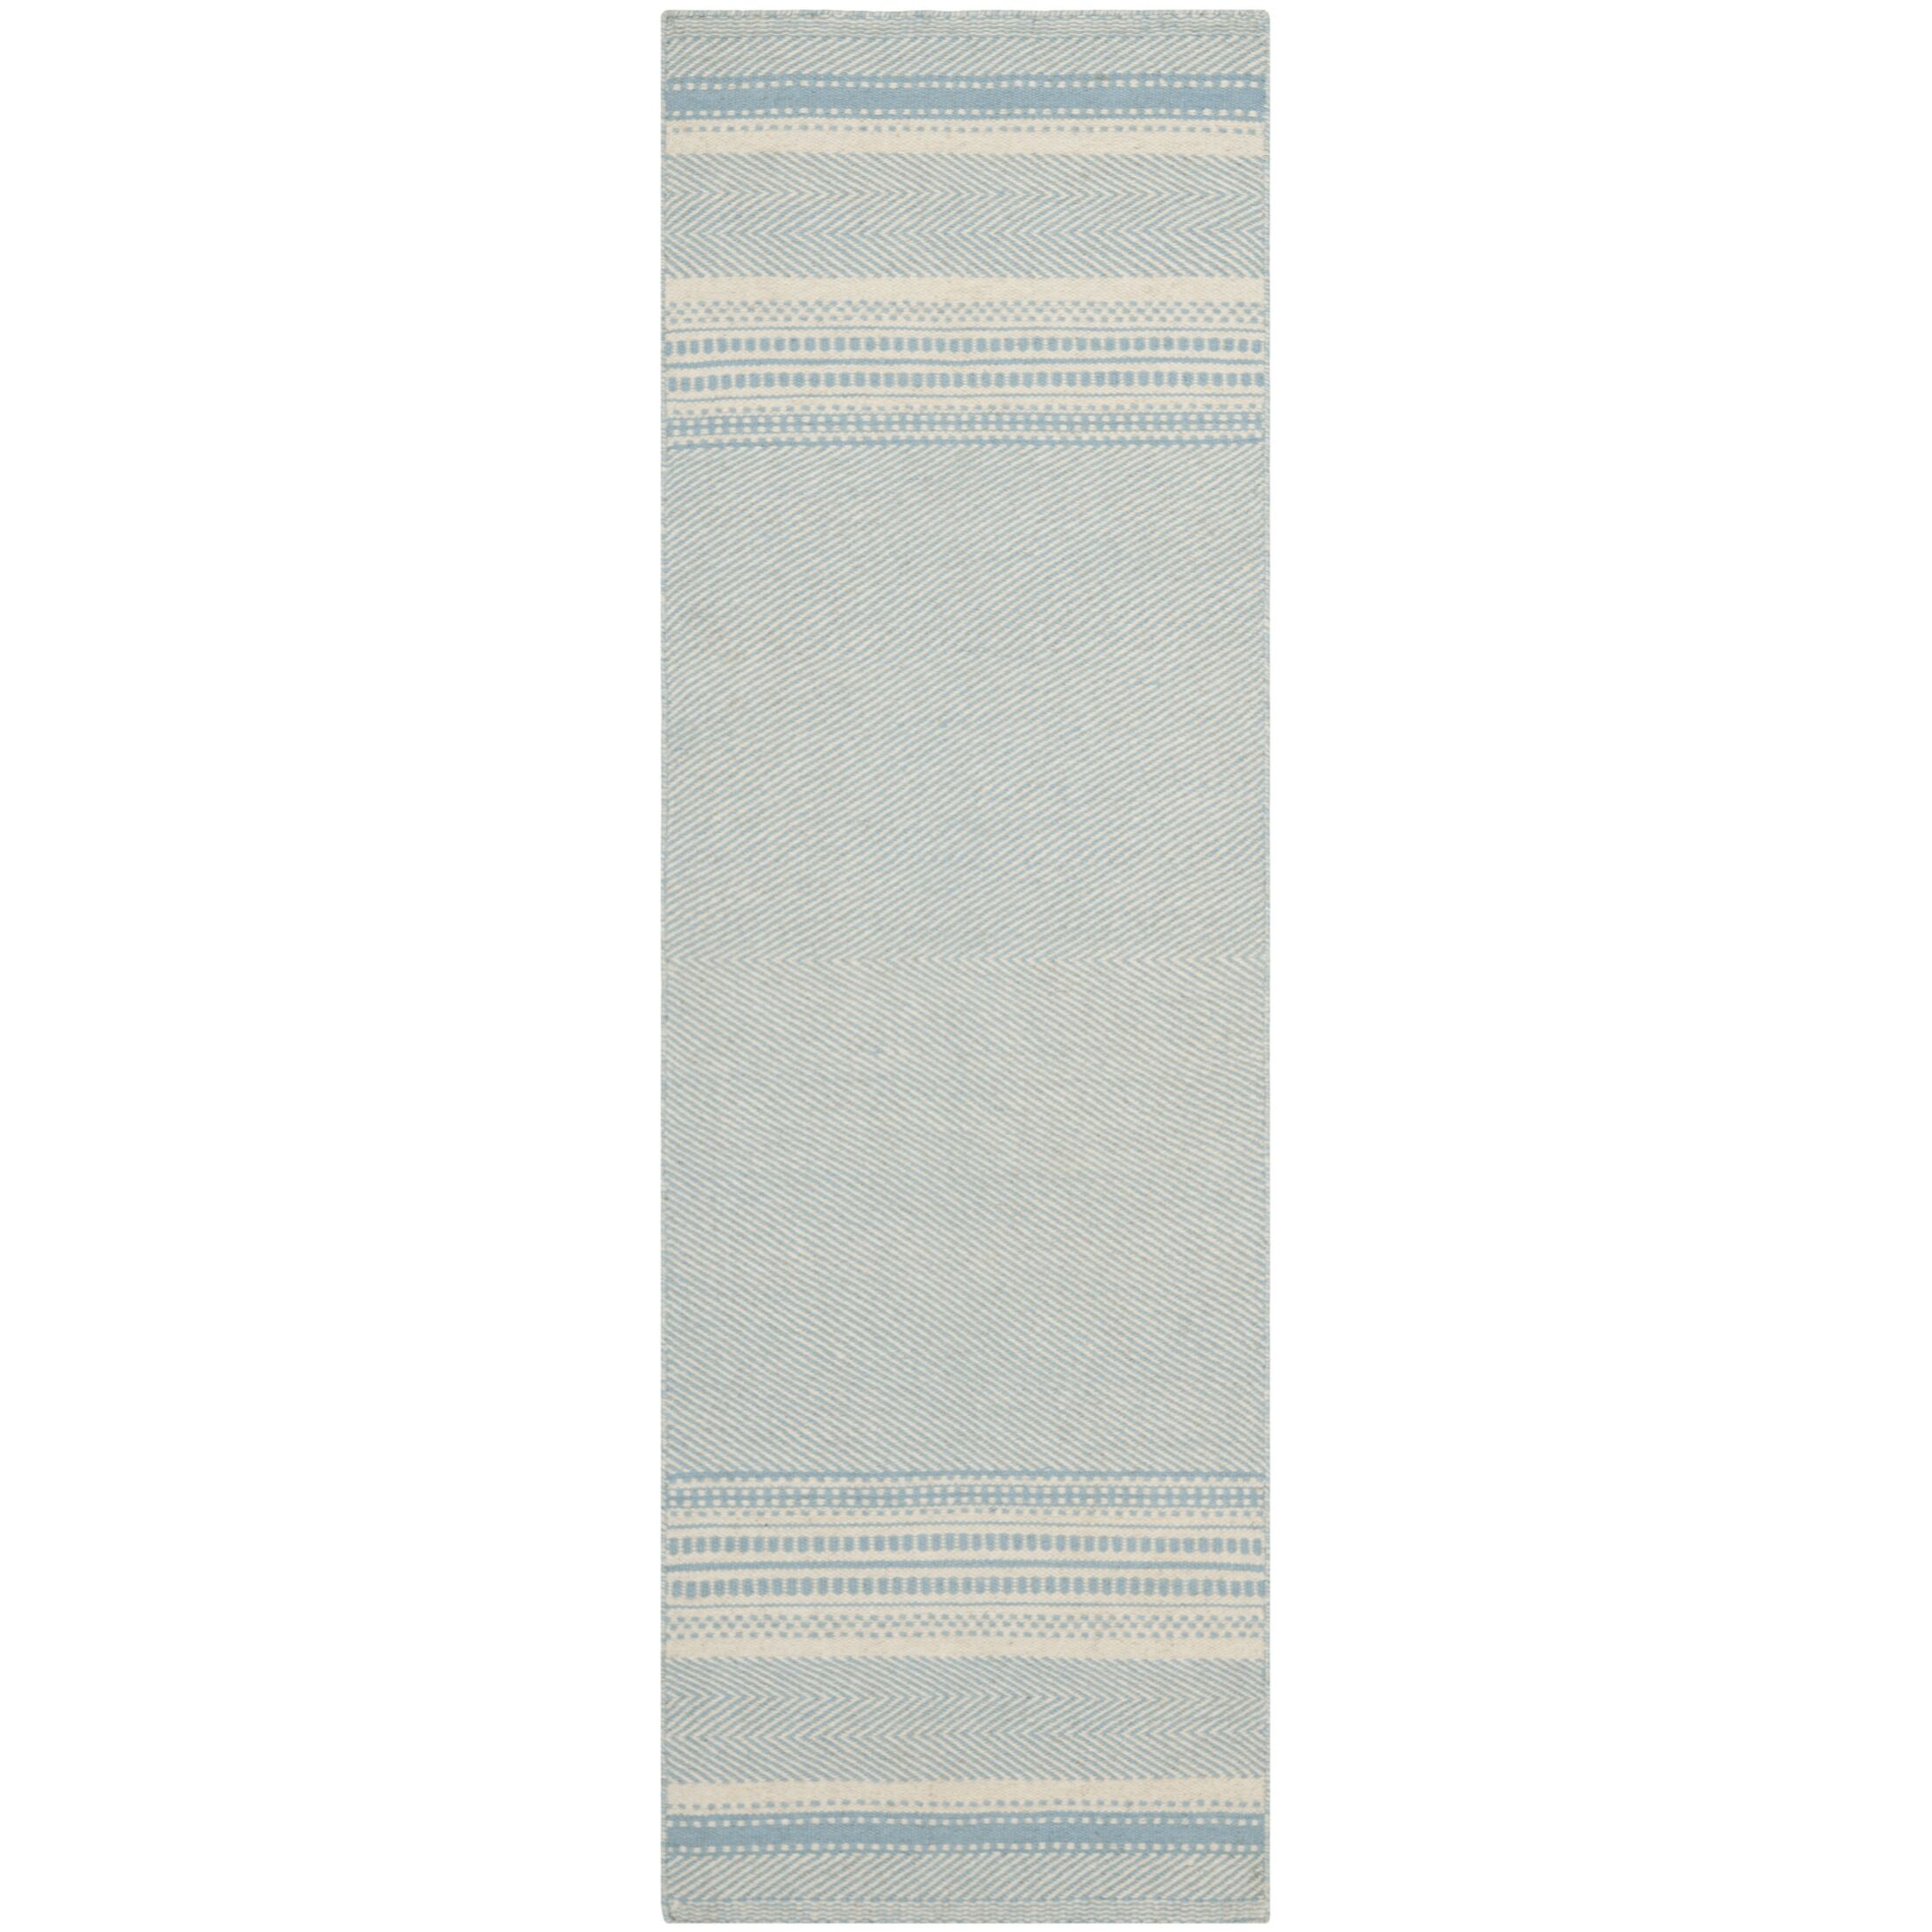 Kilim Hand-Woven Wool Light Blue/Ivory Area Rug Rug Size: Runner 2'3